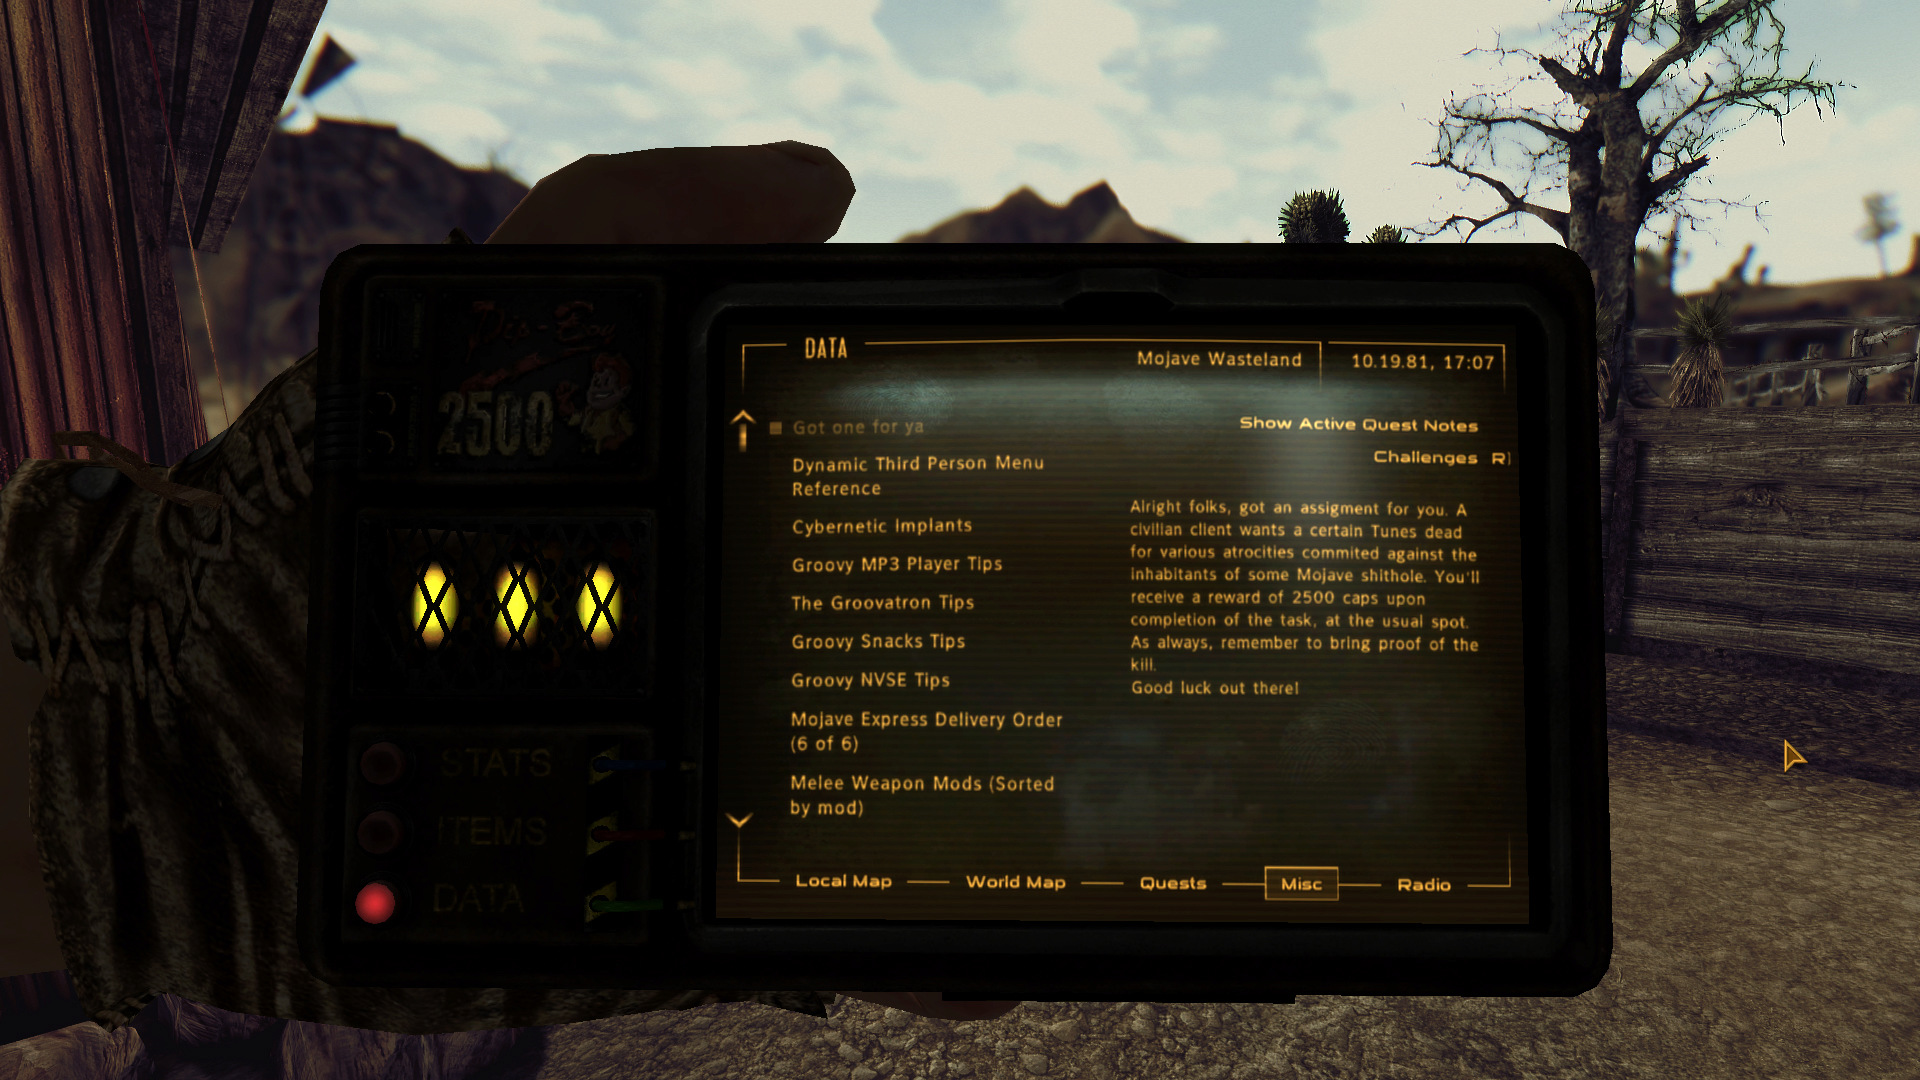 New Vegas New Year - 2019 Community Playthrough - Page 5 Enb_2032